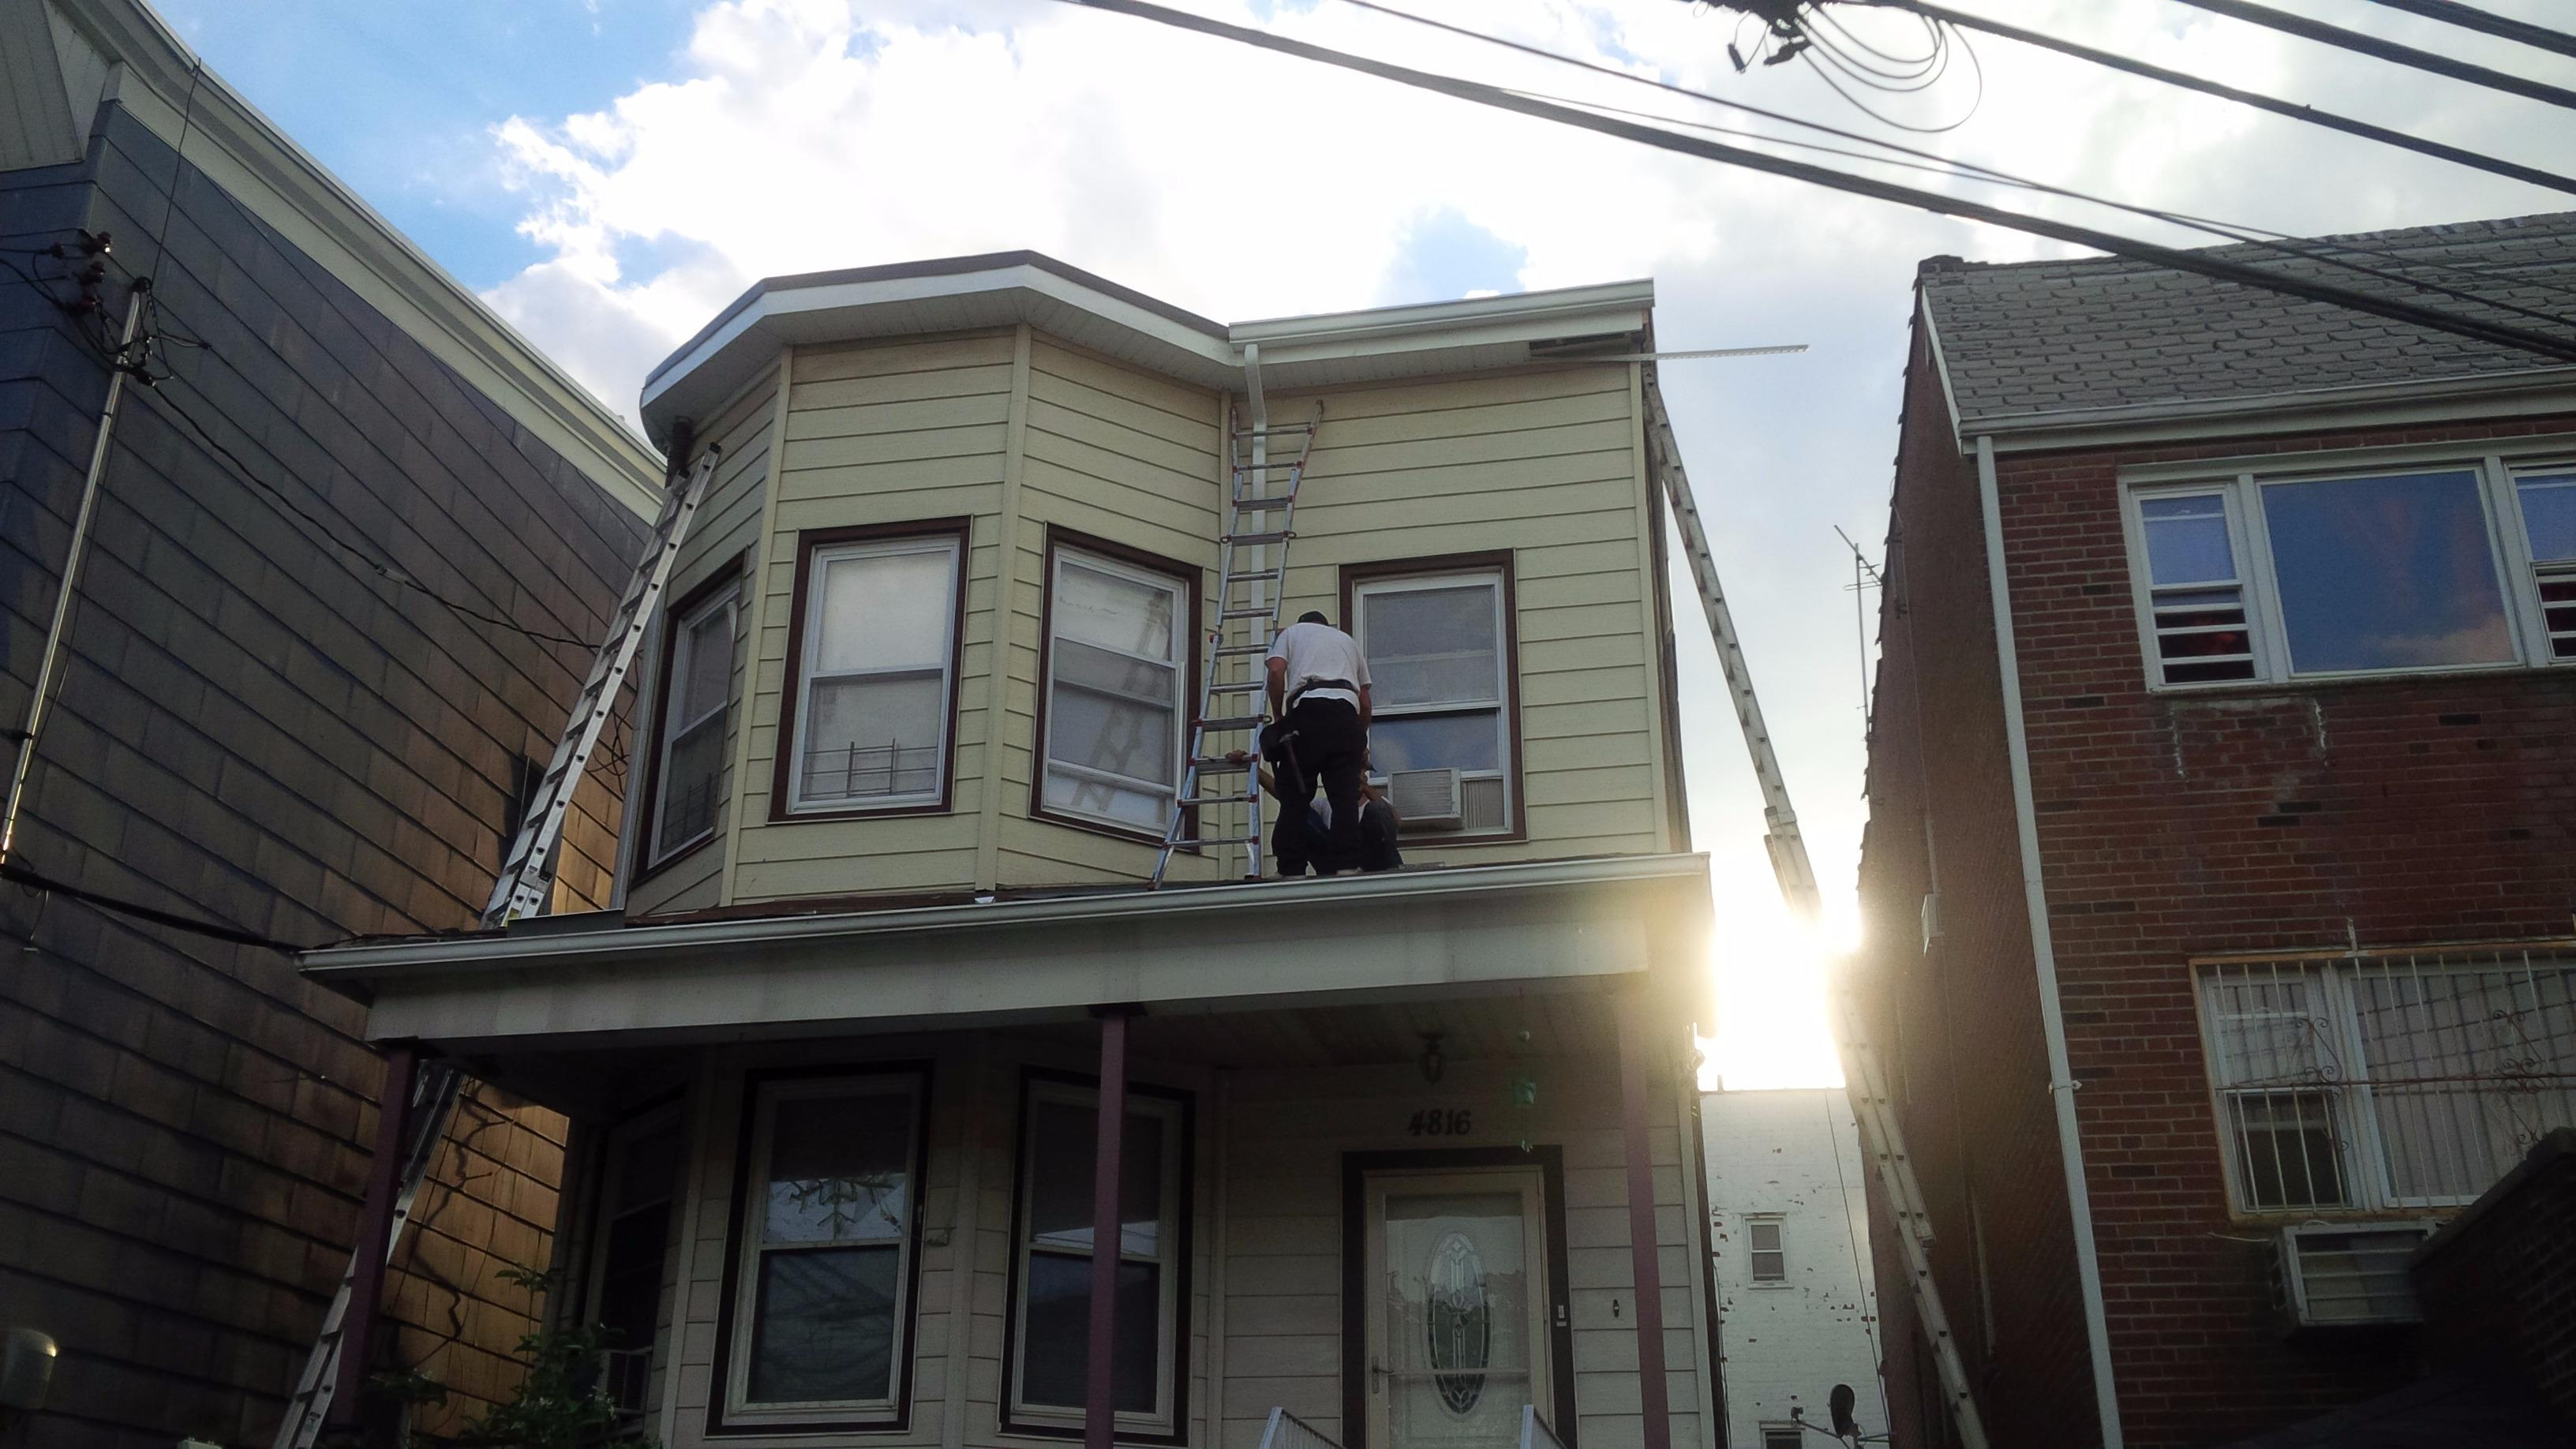 Roofing Kew Gardens In Jamaica Ny 11415